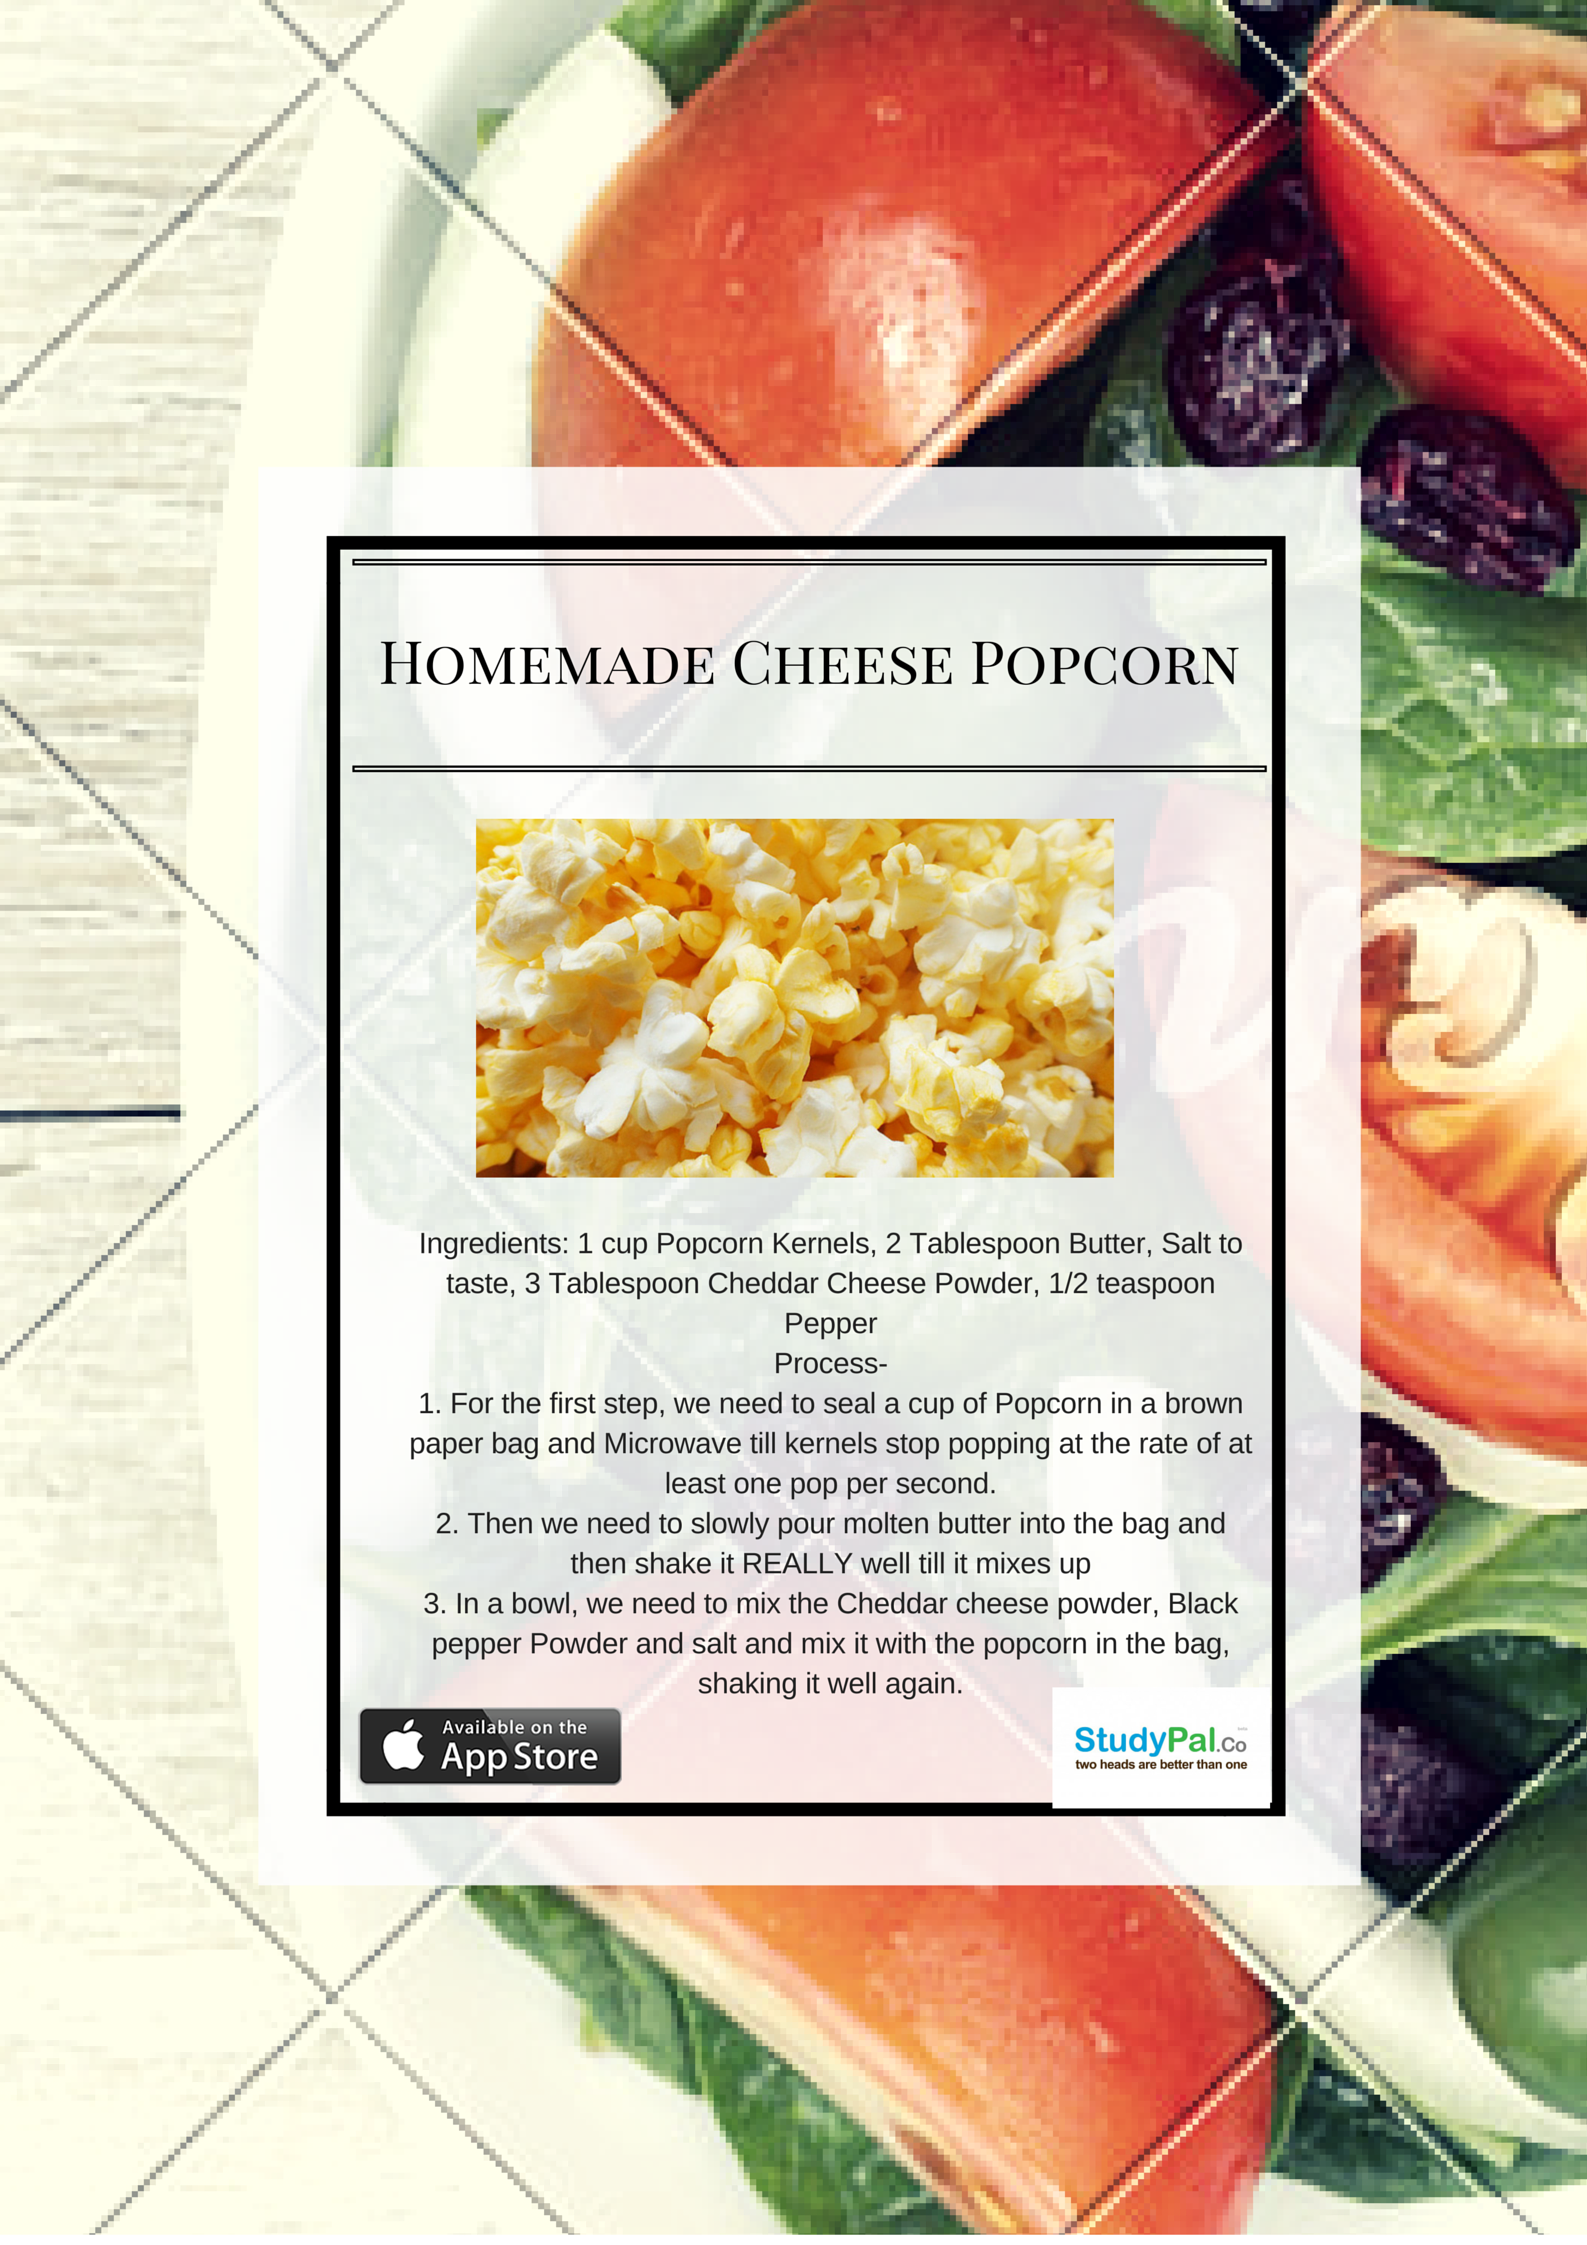 Okay, so you want to gorge on something that's delicious, but without the guilt of eating greasy junk food. It is surprising how easy it is to make your favorite Cheese Popcorn in just a few easy steps.